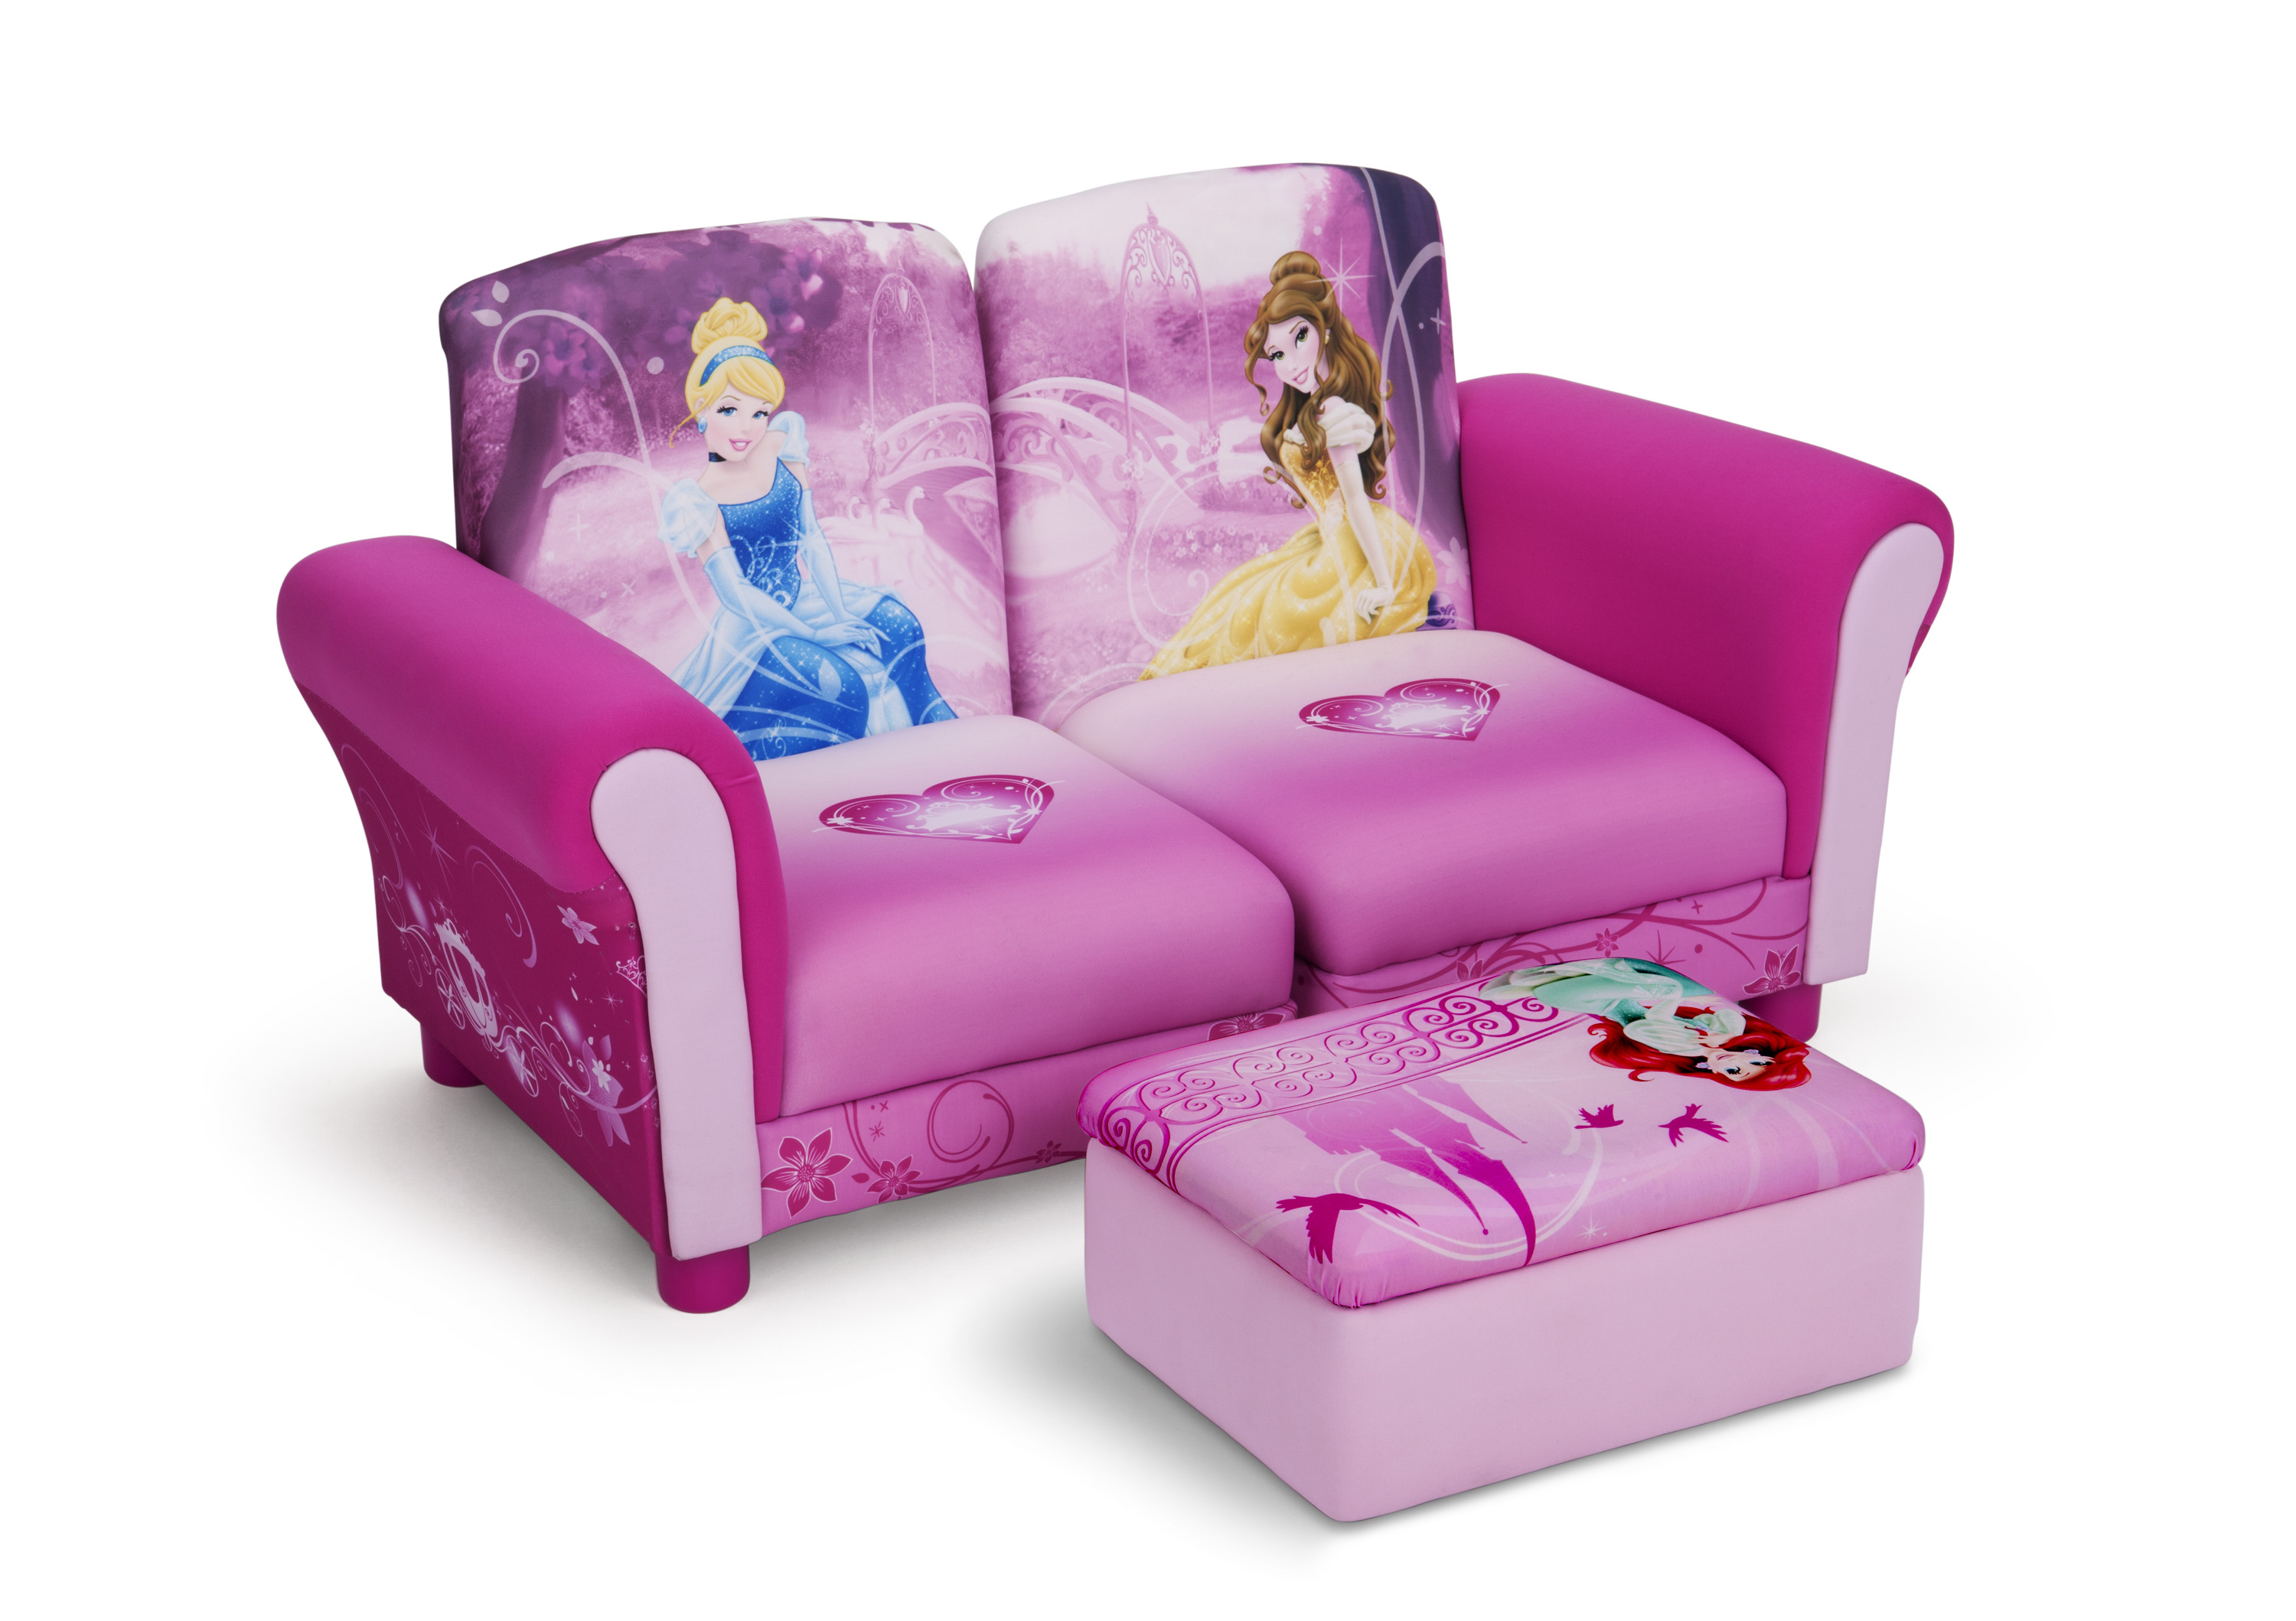 Upholstered Children's Chairs Delta Launches Children S Upholstered Chairs The Toy Book